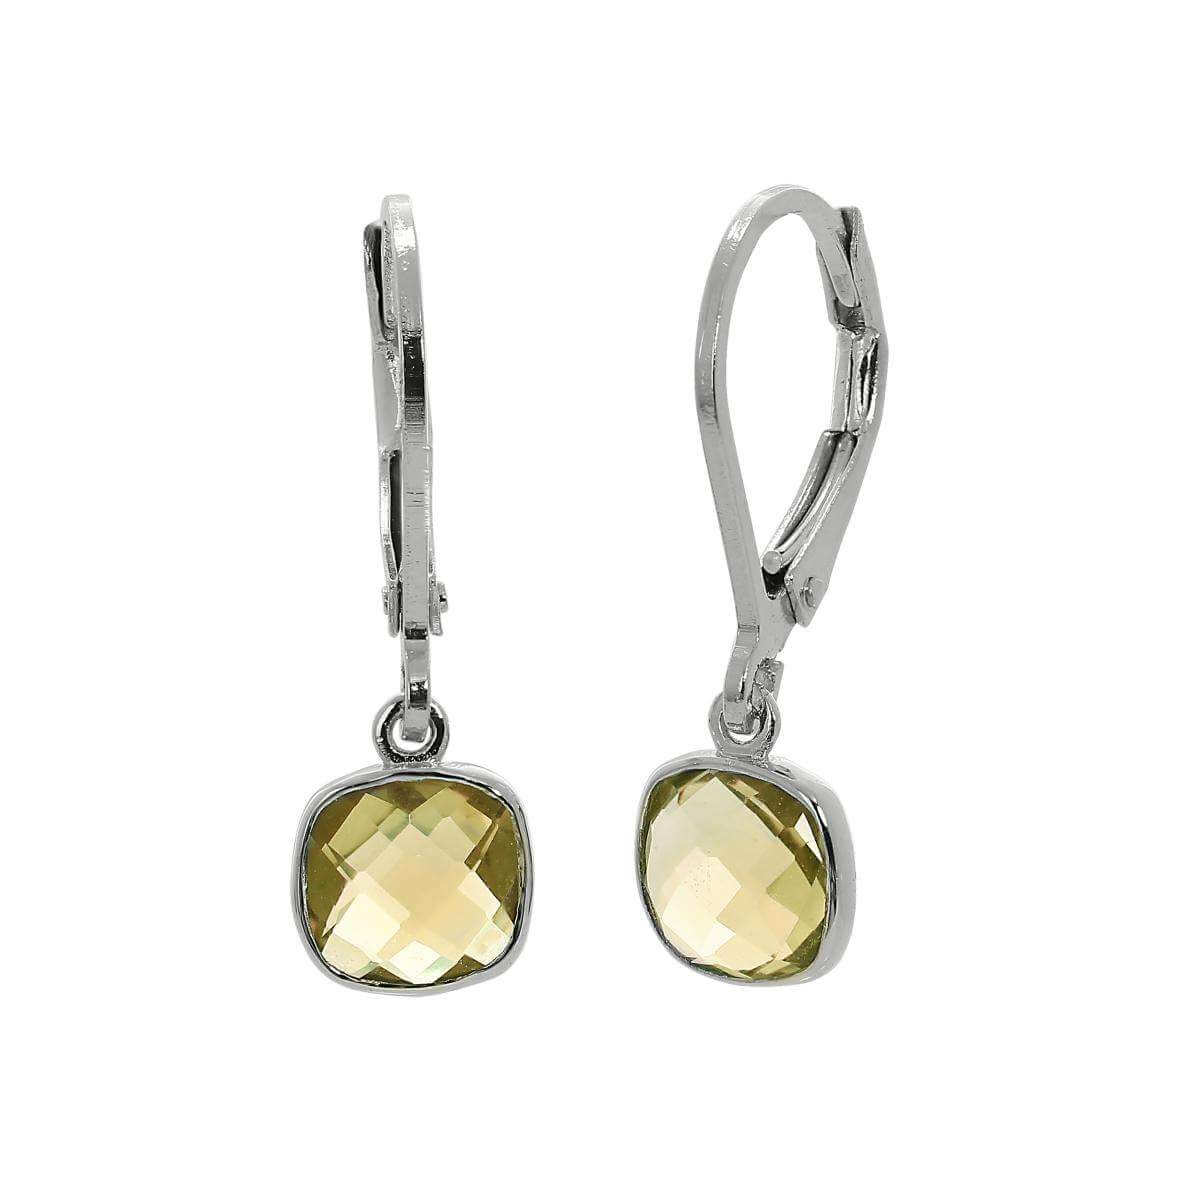 Sterling Silver & Genuine Lemon Quartz Square Leverback Earrings